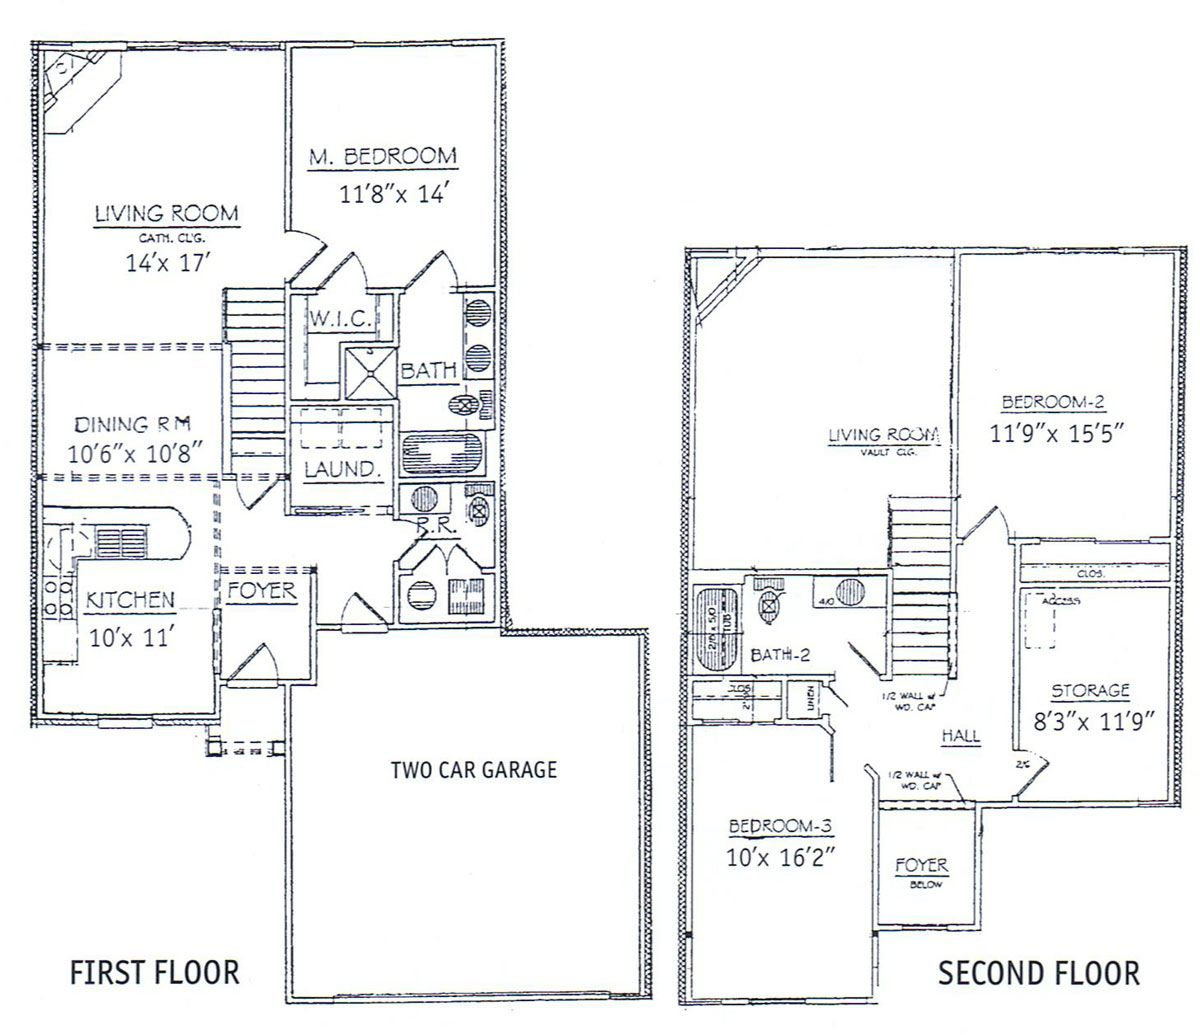 3 bedrooms floor plans 2 story bdrm basement the two for Building floor plan generator